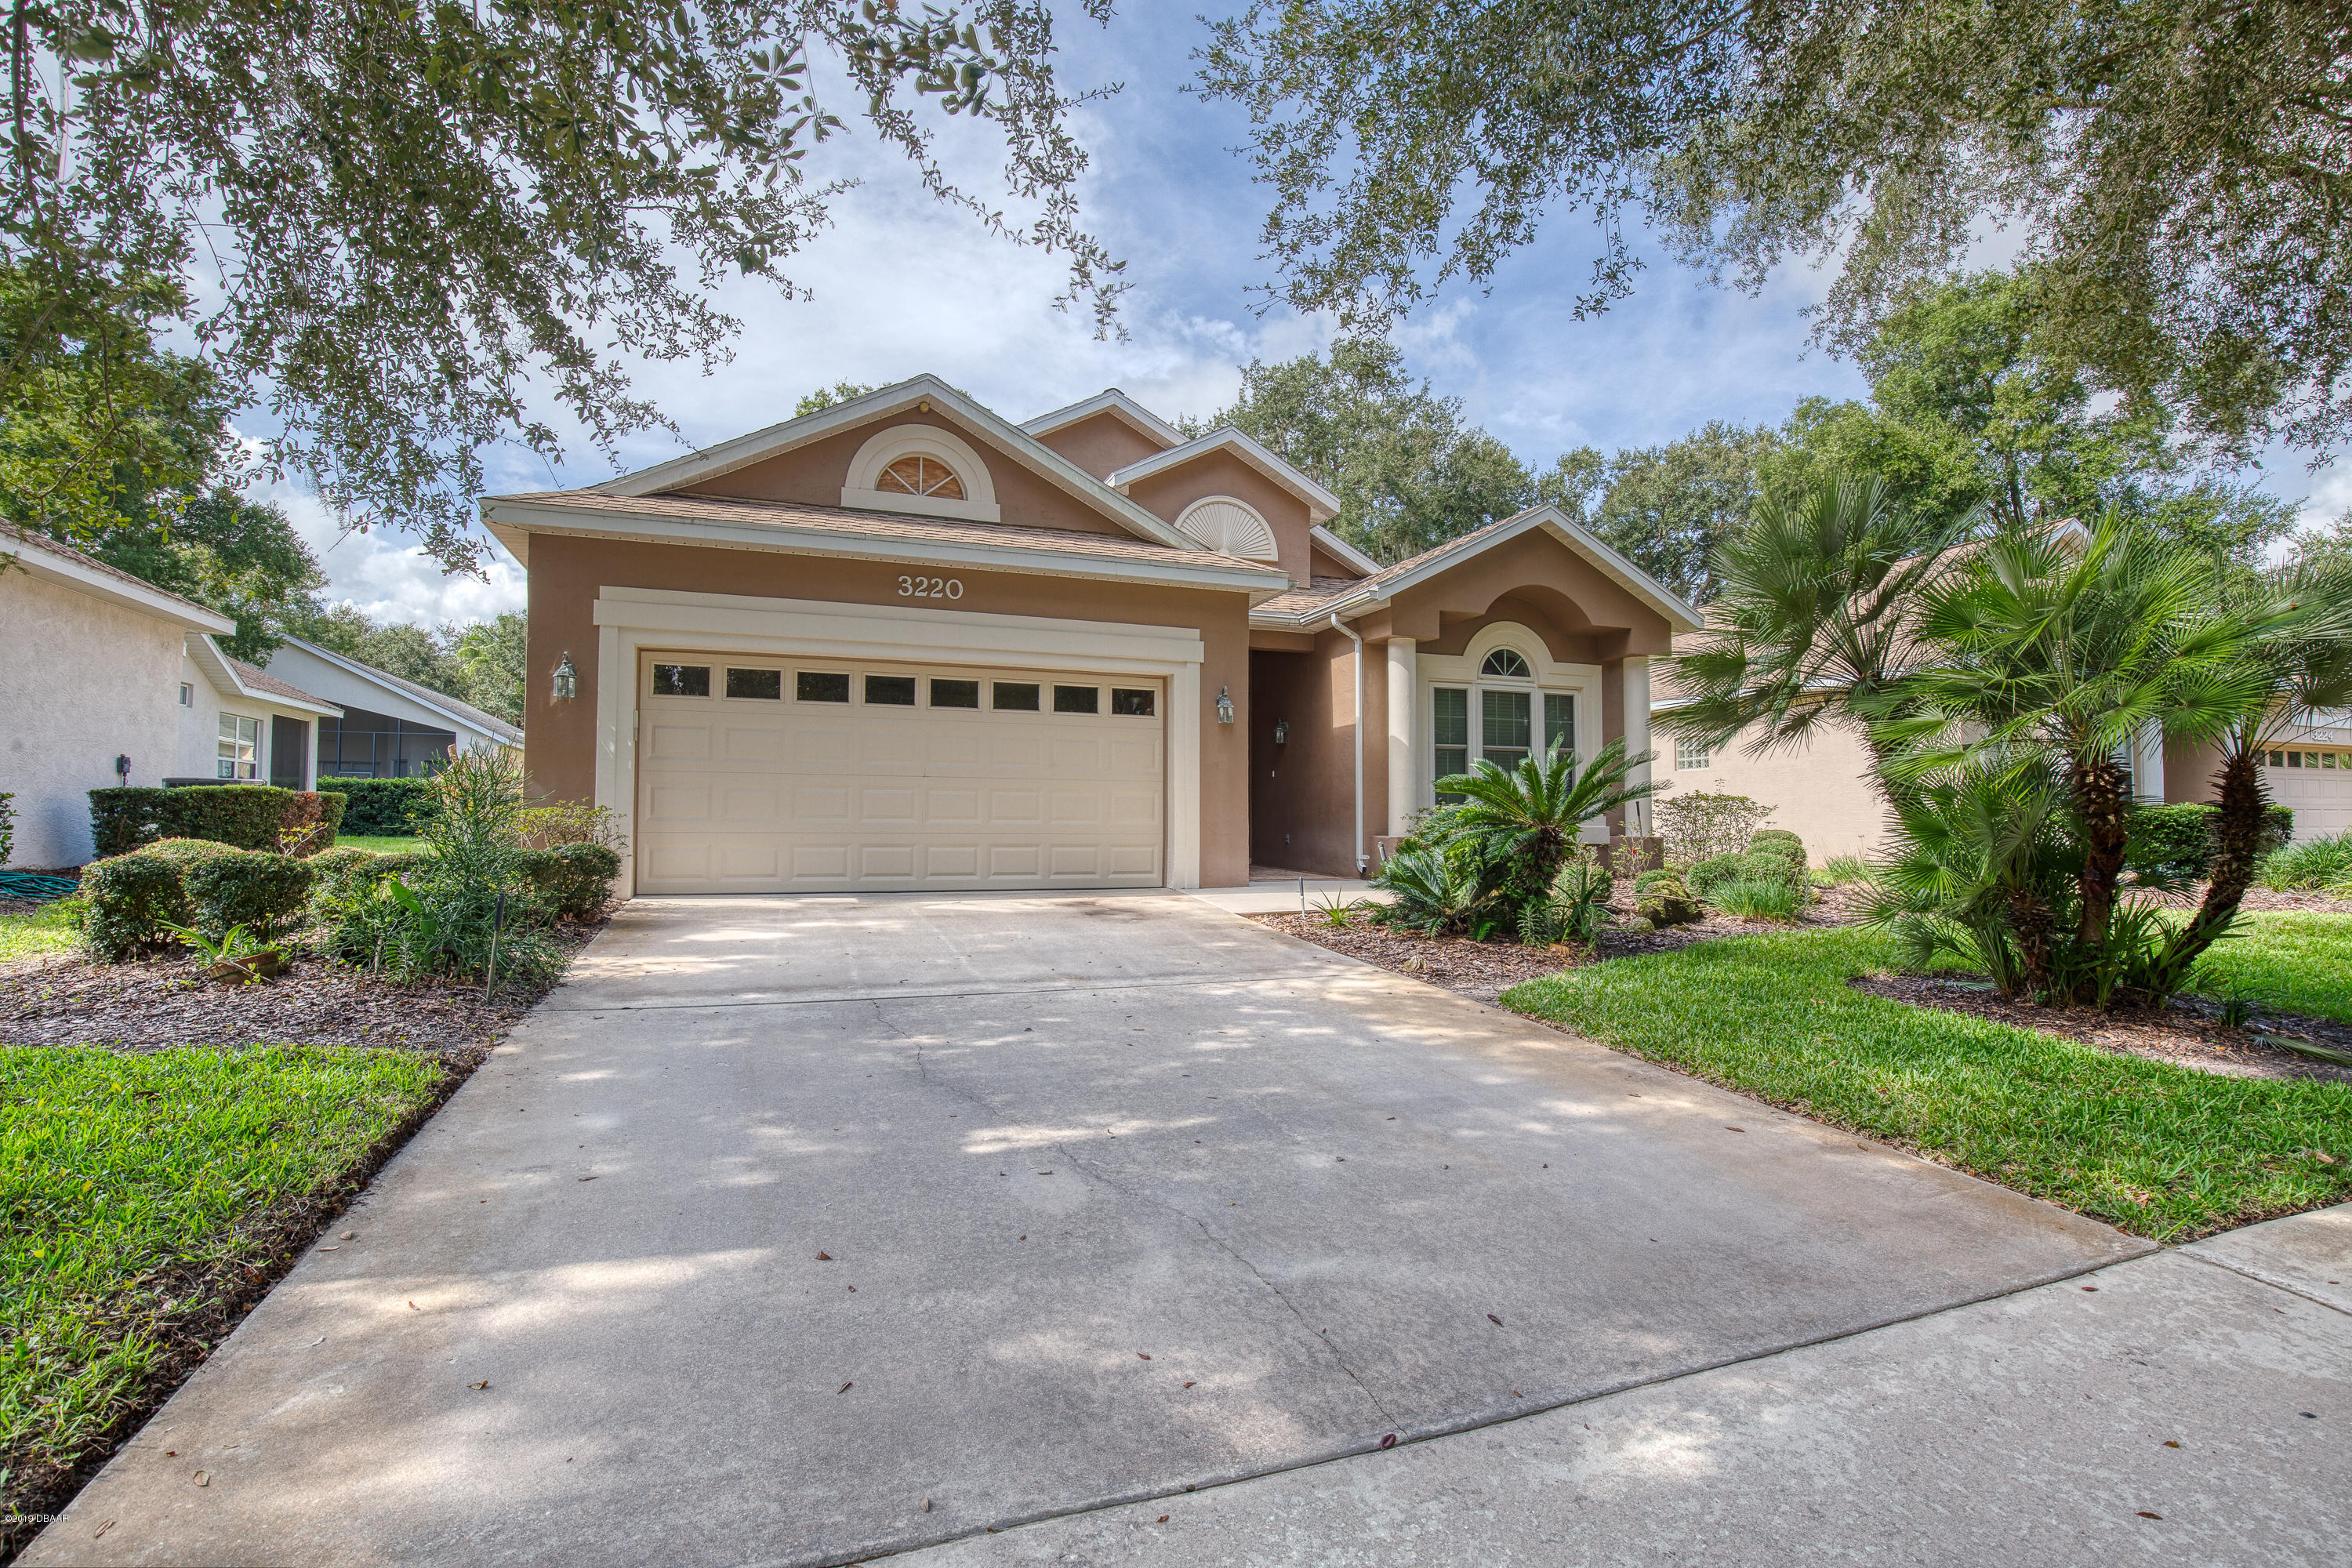 3220 Galty Circle, Ormond Beach, FL 32174